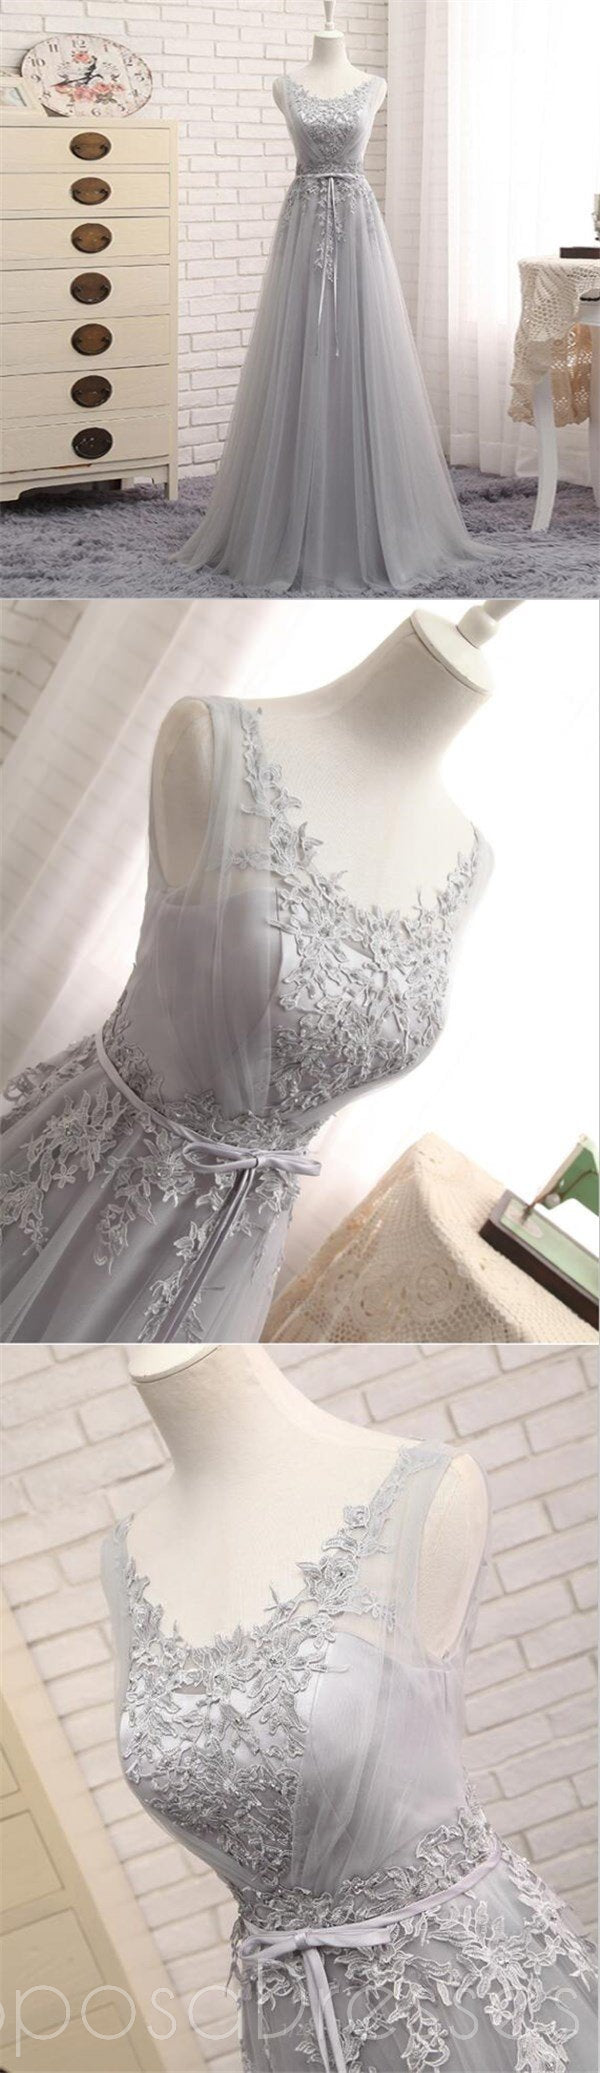 Scoop Neckline Gray Lace Evening Prom Dresses, Popular Lace Party Prom Dresses, Custom Long Prom Dresses, Cheap Formal Prom Dresses, 17183